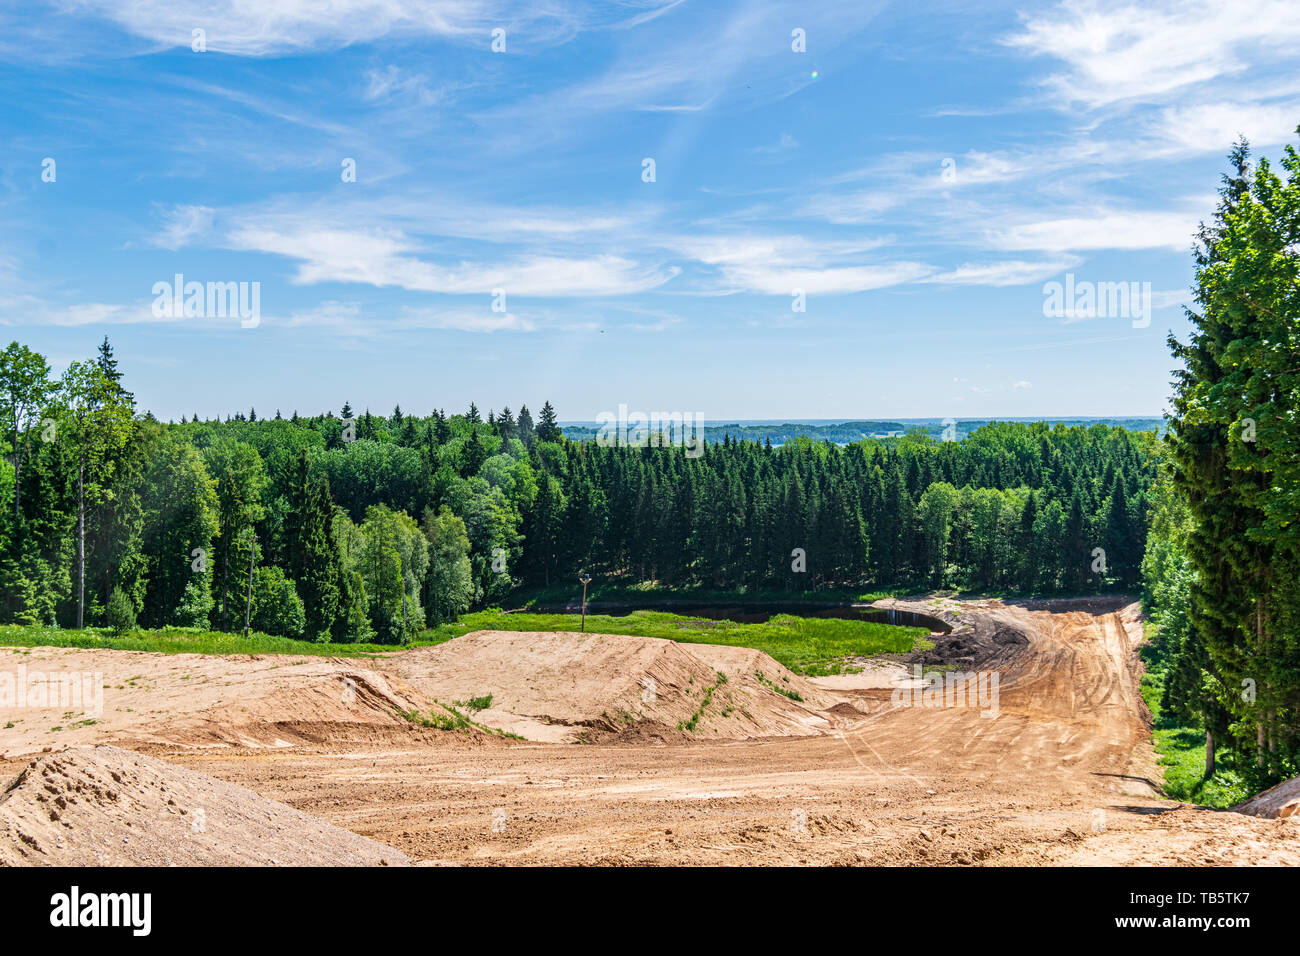 cultivated fields in countryside with dark and wet soil for agriculture. tractor made plotting furrows on the ground - Stock Image